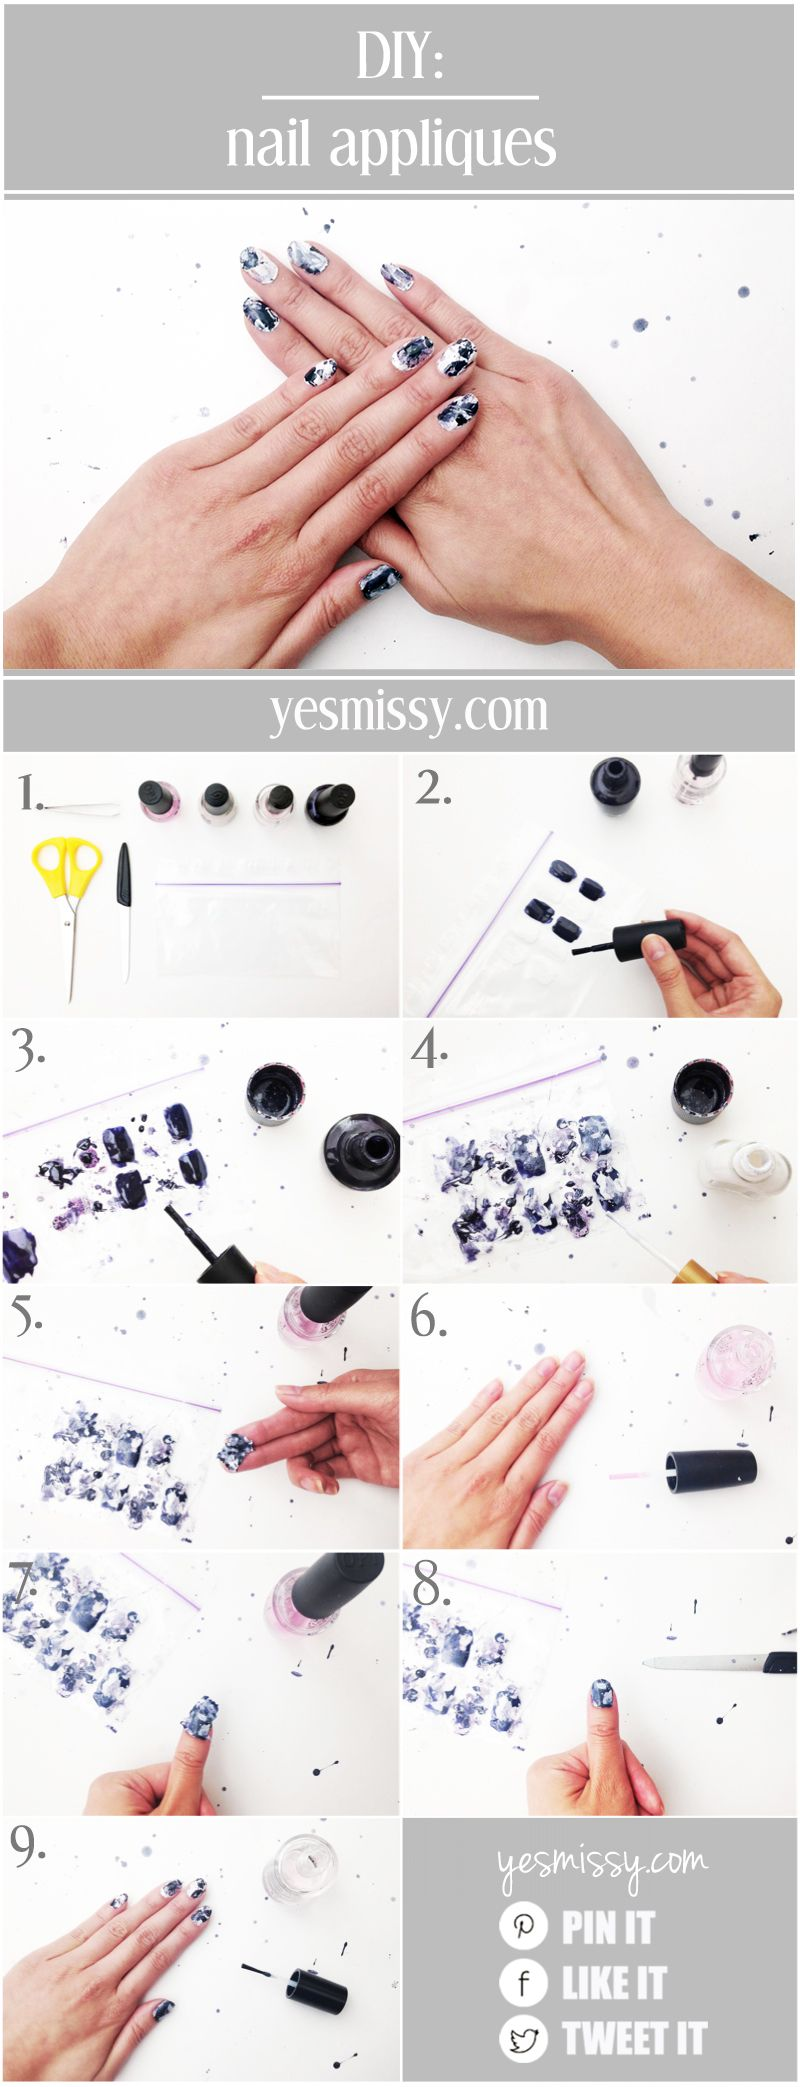 Make Your Own DIY Nail Appliques and Nail Stickers | nail stuff ...